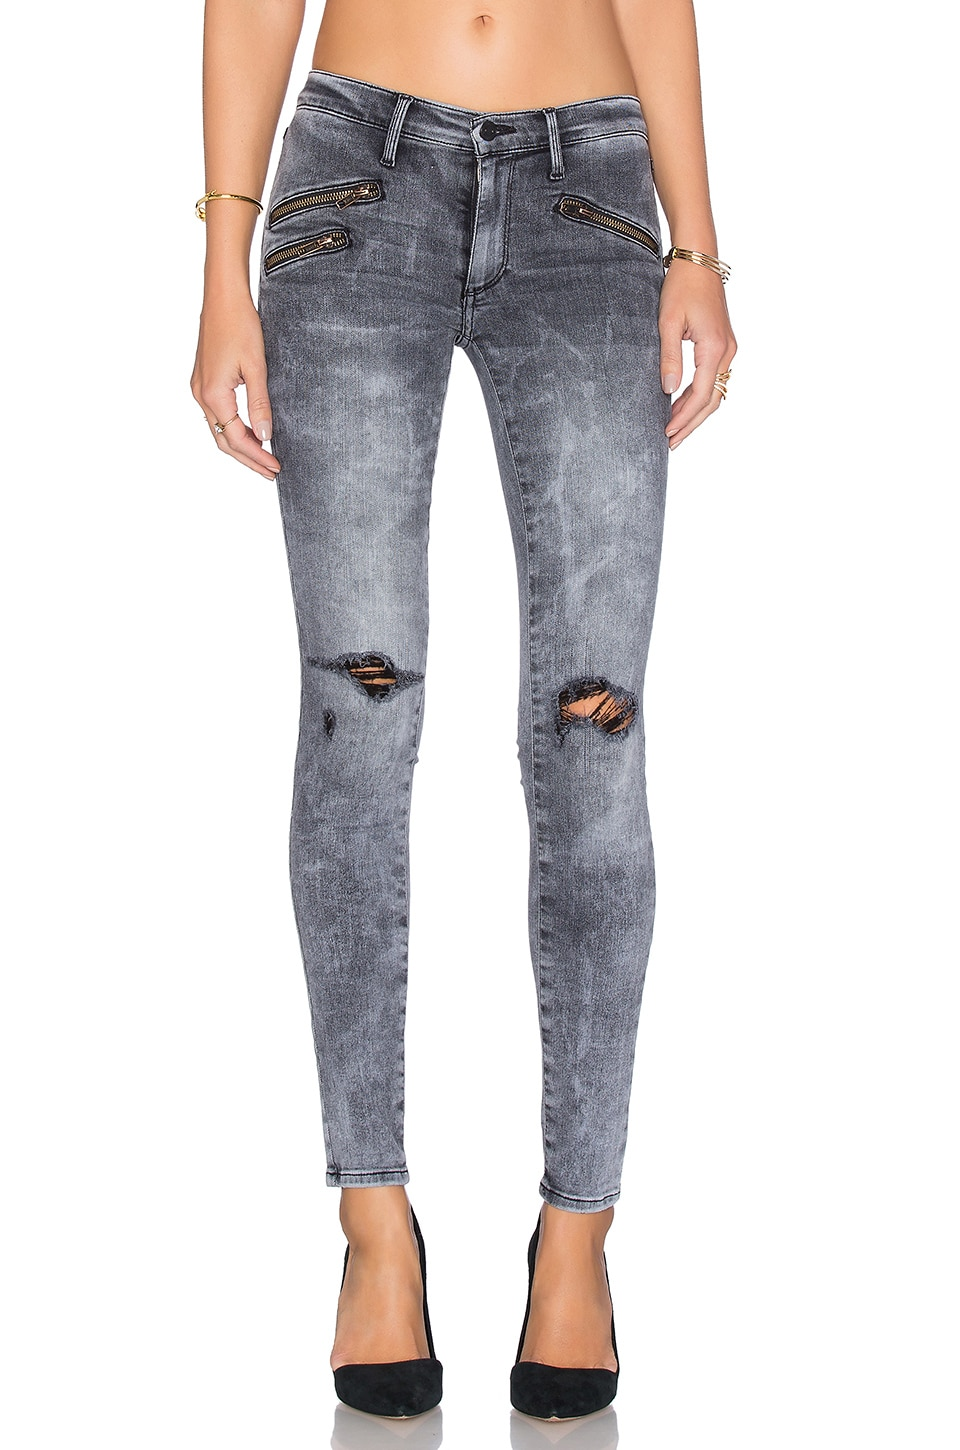 Billie Zipper Skinny by Black Orchid